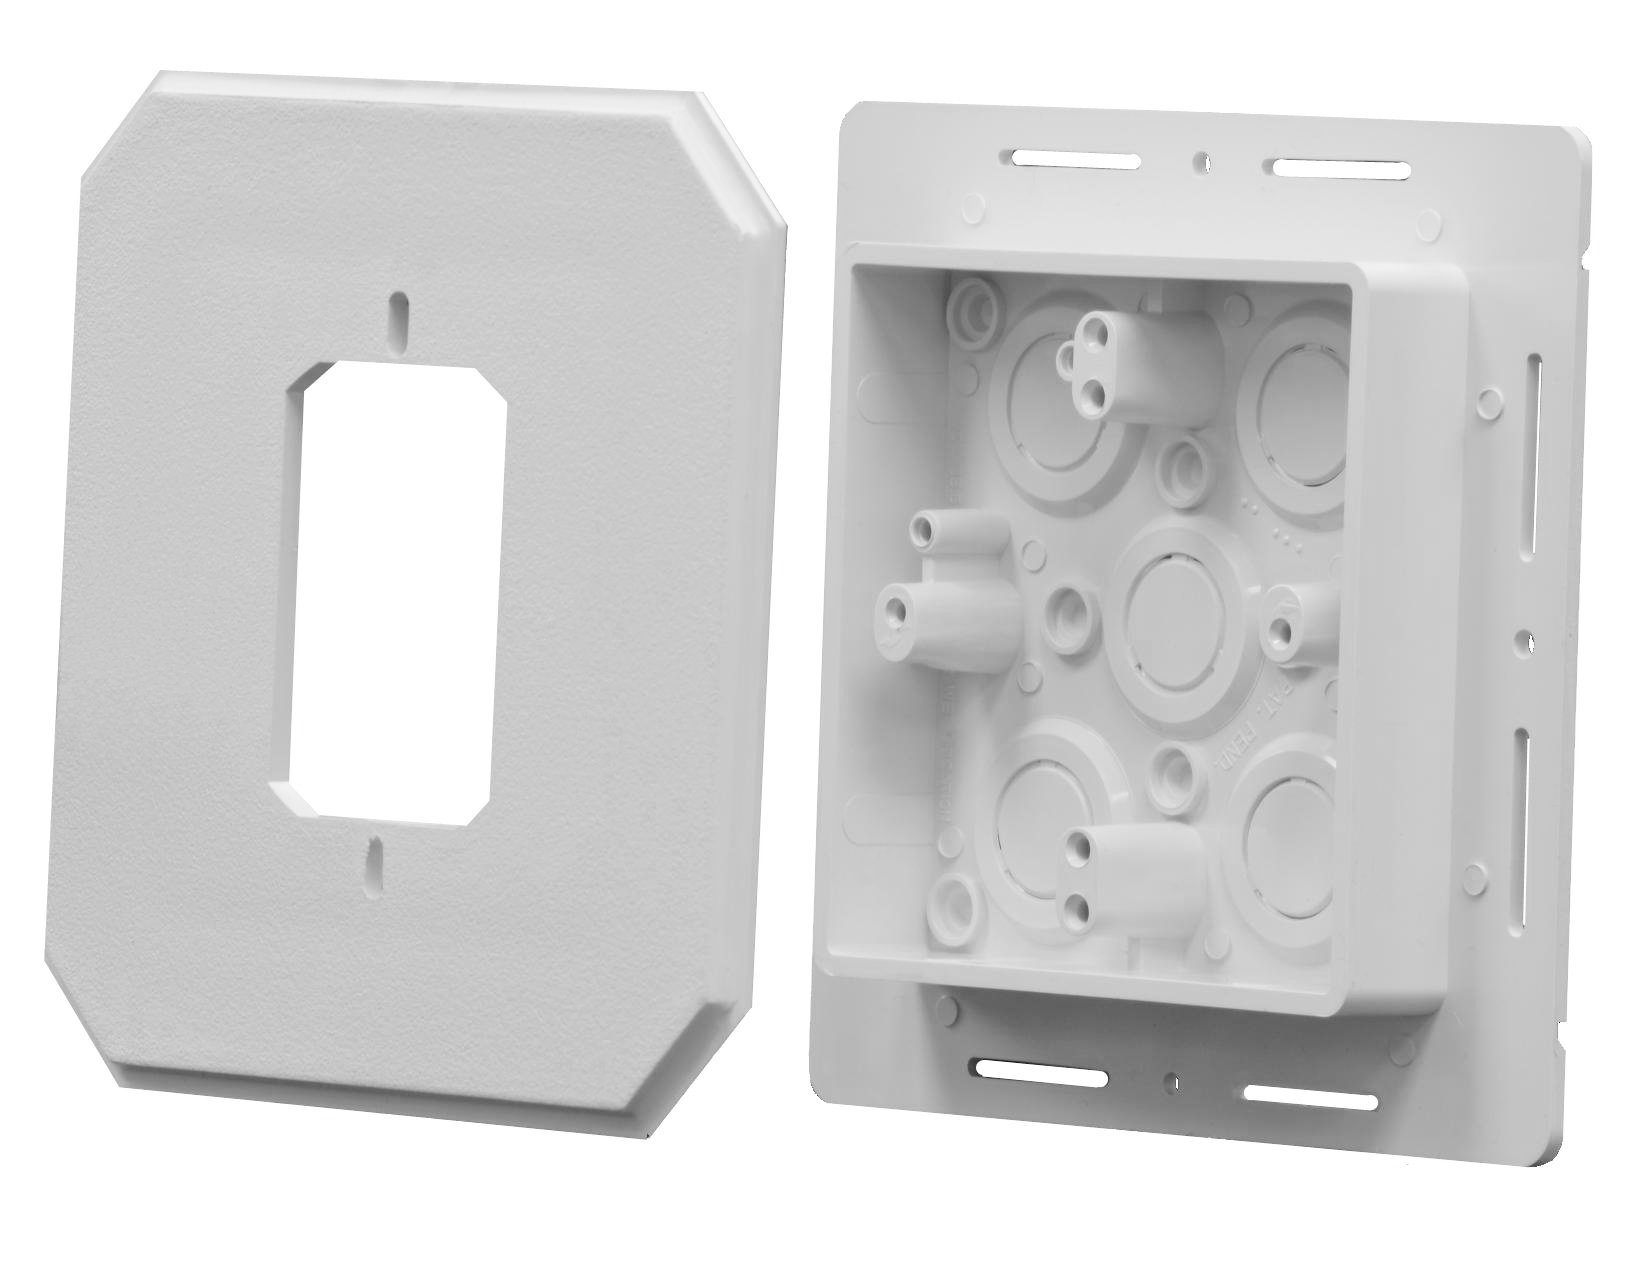 Arlington 8081F Siding Box Kit For Fixtures and Receptacles, Cover with Flanges, 1-Pack, White